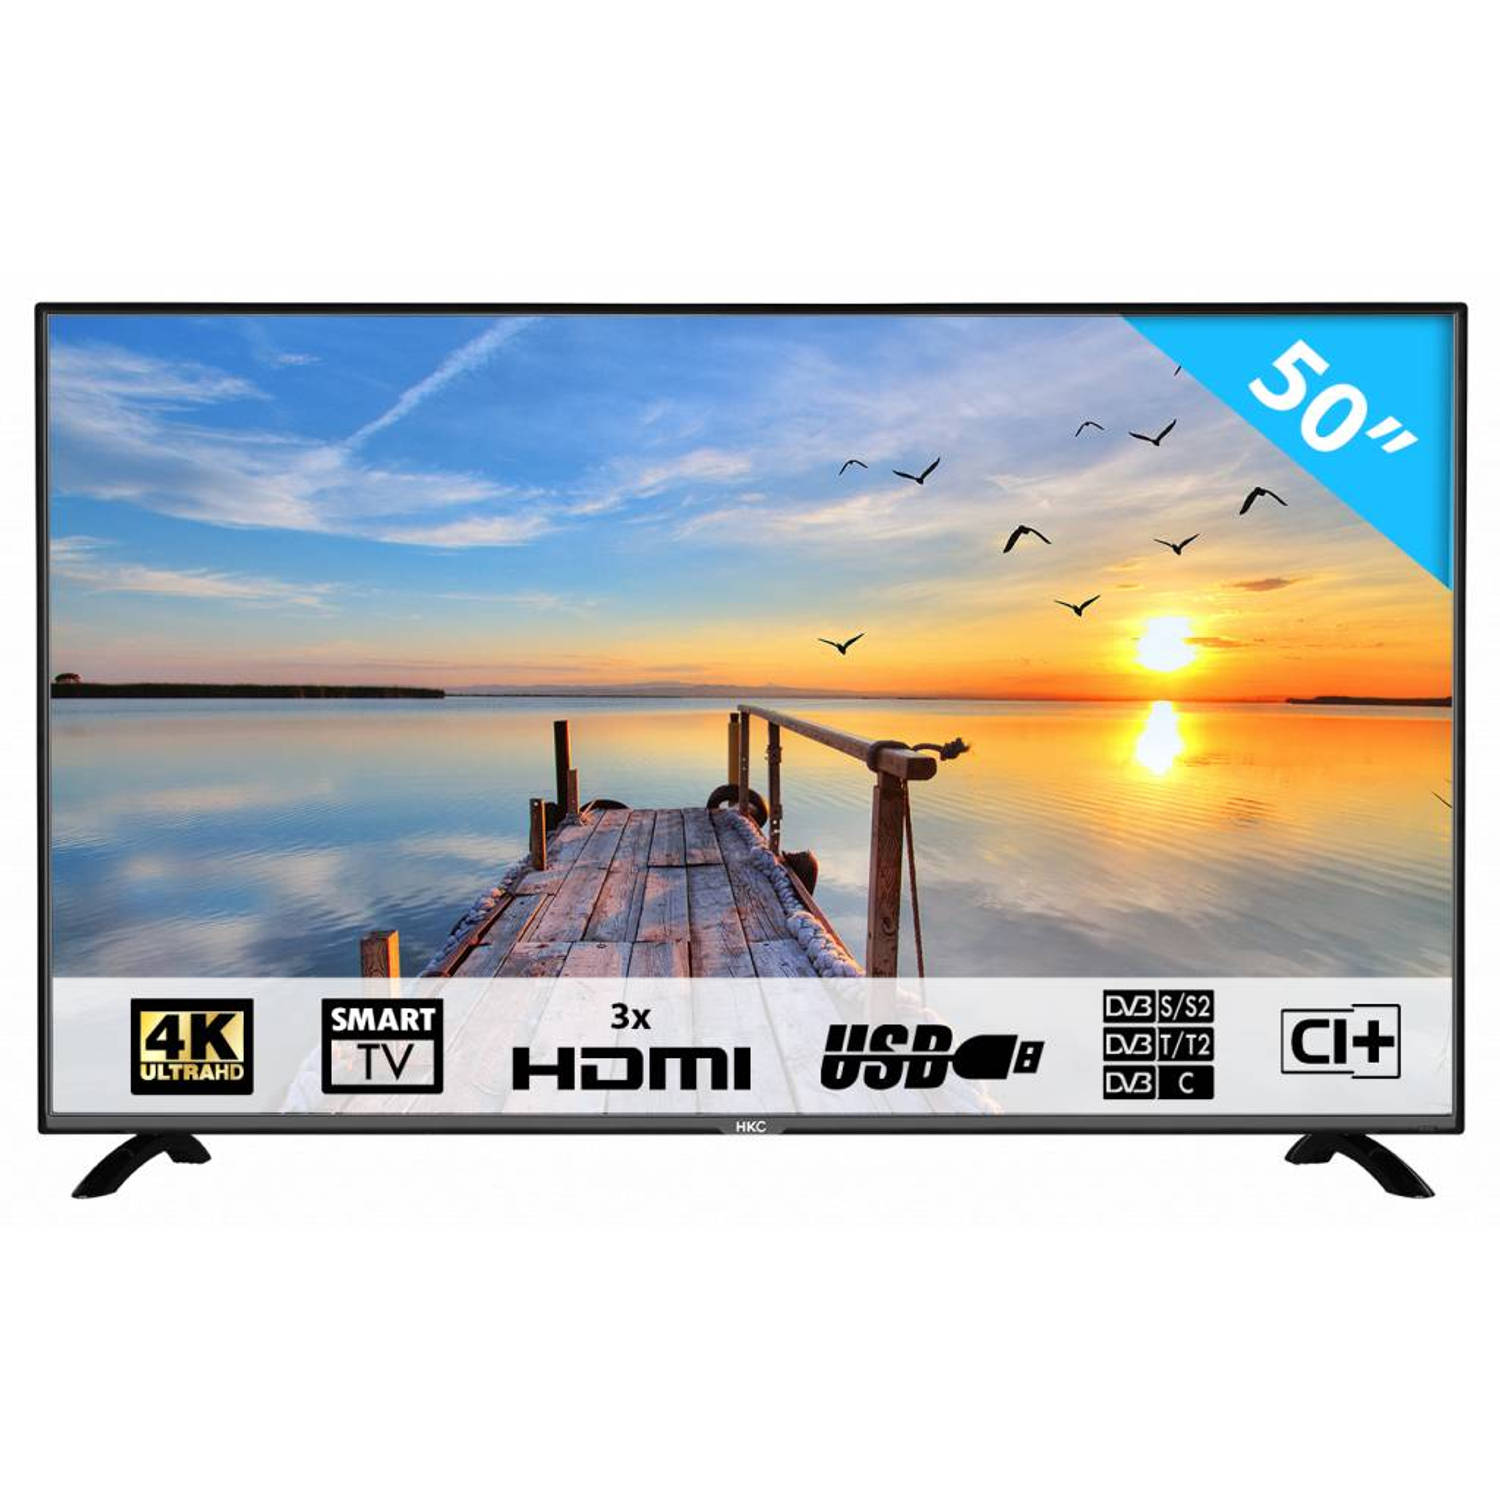 HKC 50F1 50 inch 4K/Ultra HD LED SMART tv